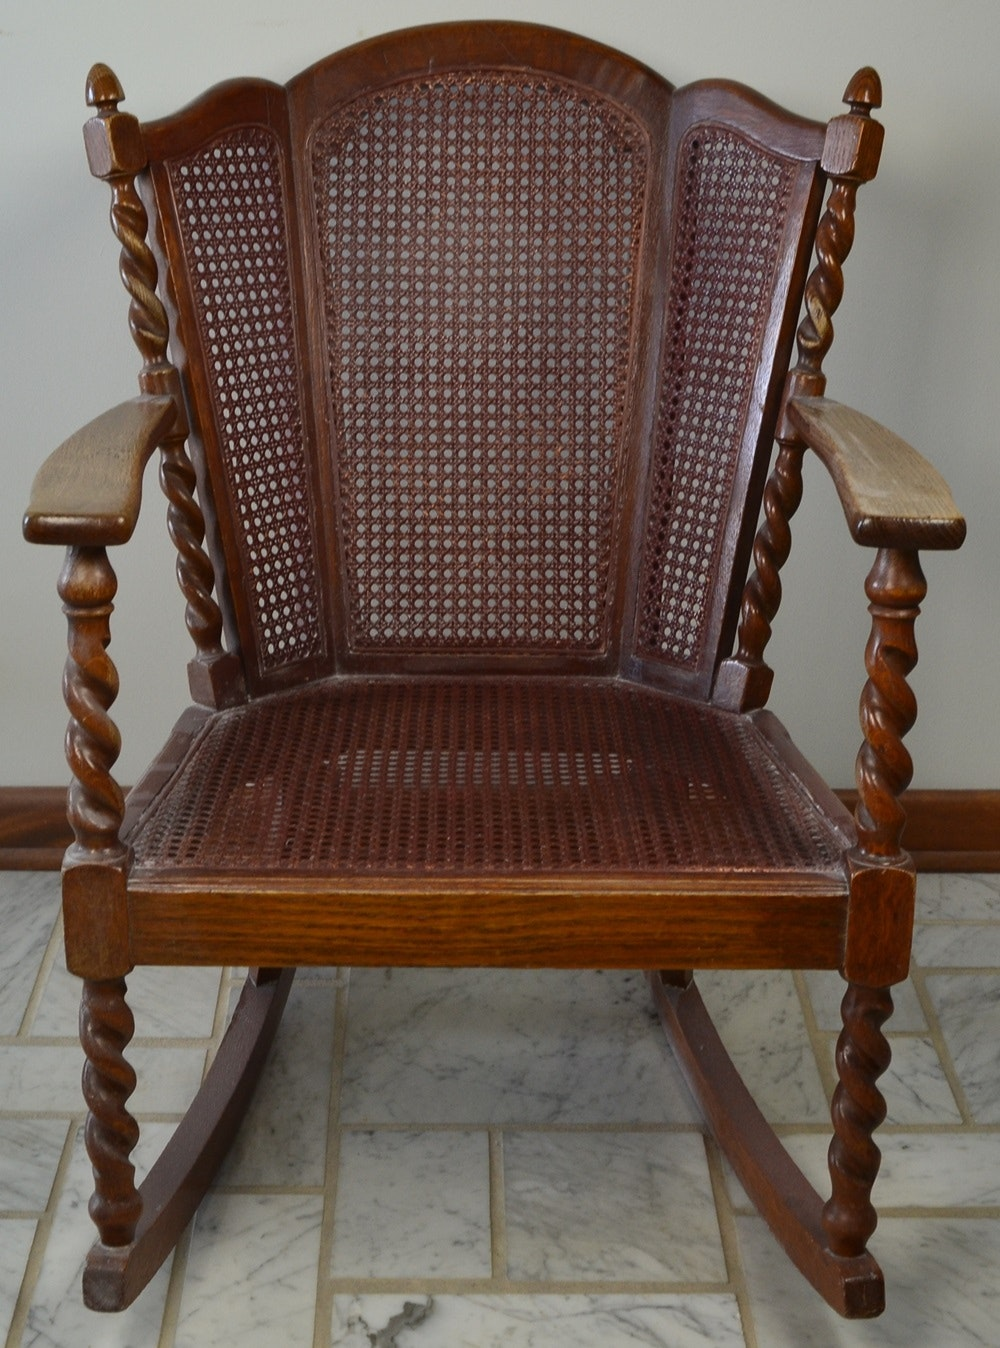 Early 1900s Rocking Arm Chair With Spiral Legs Ebth & Early 1900 Furniture Styles - Best Image Middleburgarts.Org